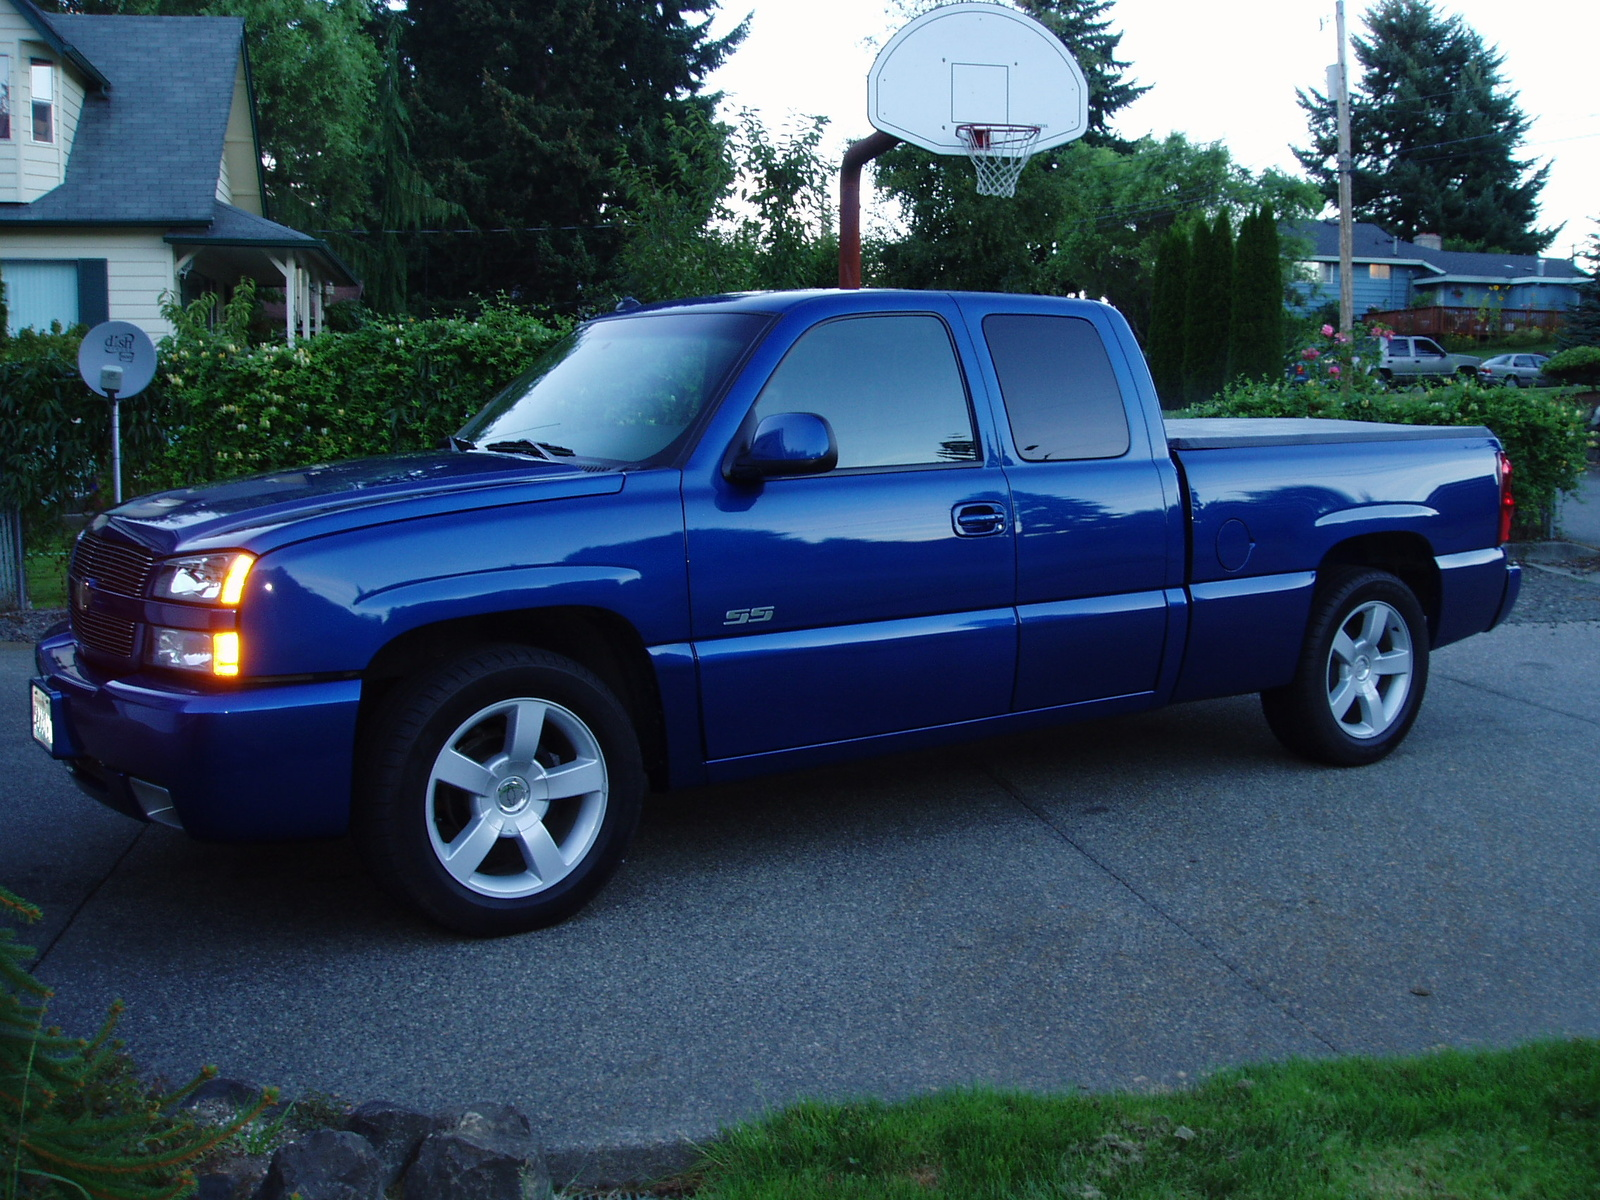 2003 chevrolet silverado 1500 ss other pictures cargurus. Black Bedroom Furniture Sets. Home Design Ideas